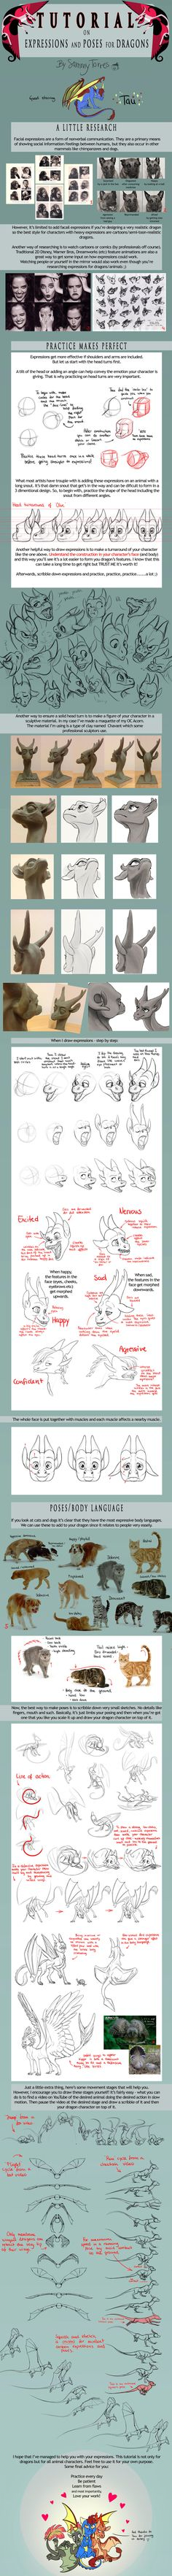 TUTORIAL: Expressions and Poses for Dragons by SammyTorres.deviantart.com on @deviantART